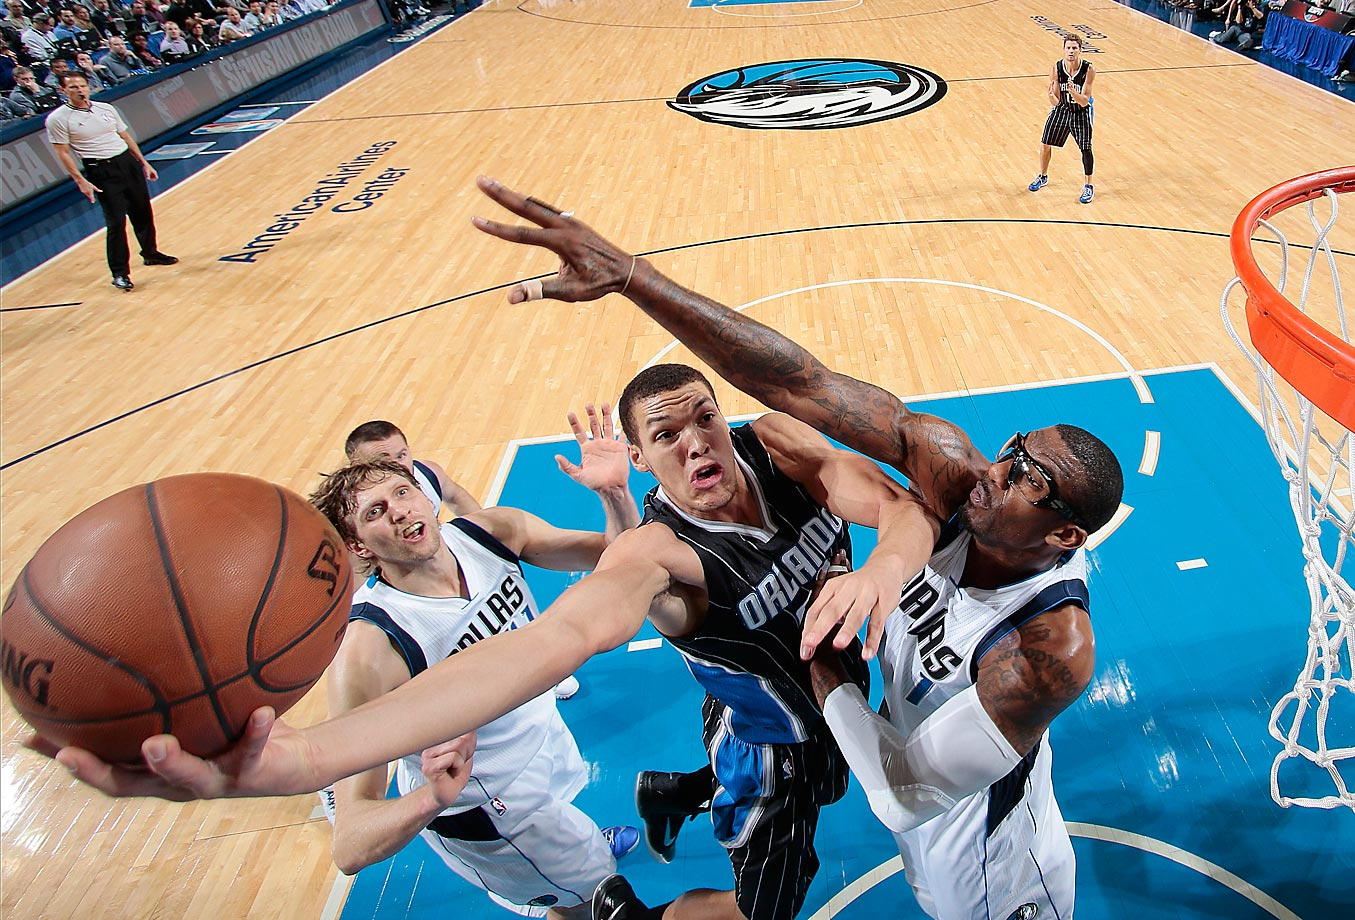 Aaron Gordon of the Orlando Magic goes in for the lay up against Amare Stoudemire of the Dallas Mavericks.